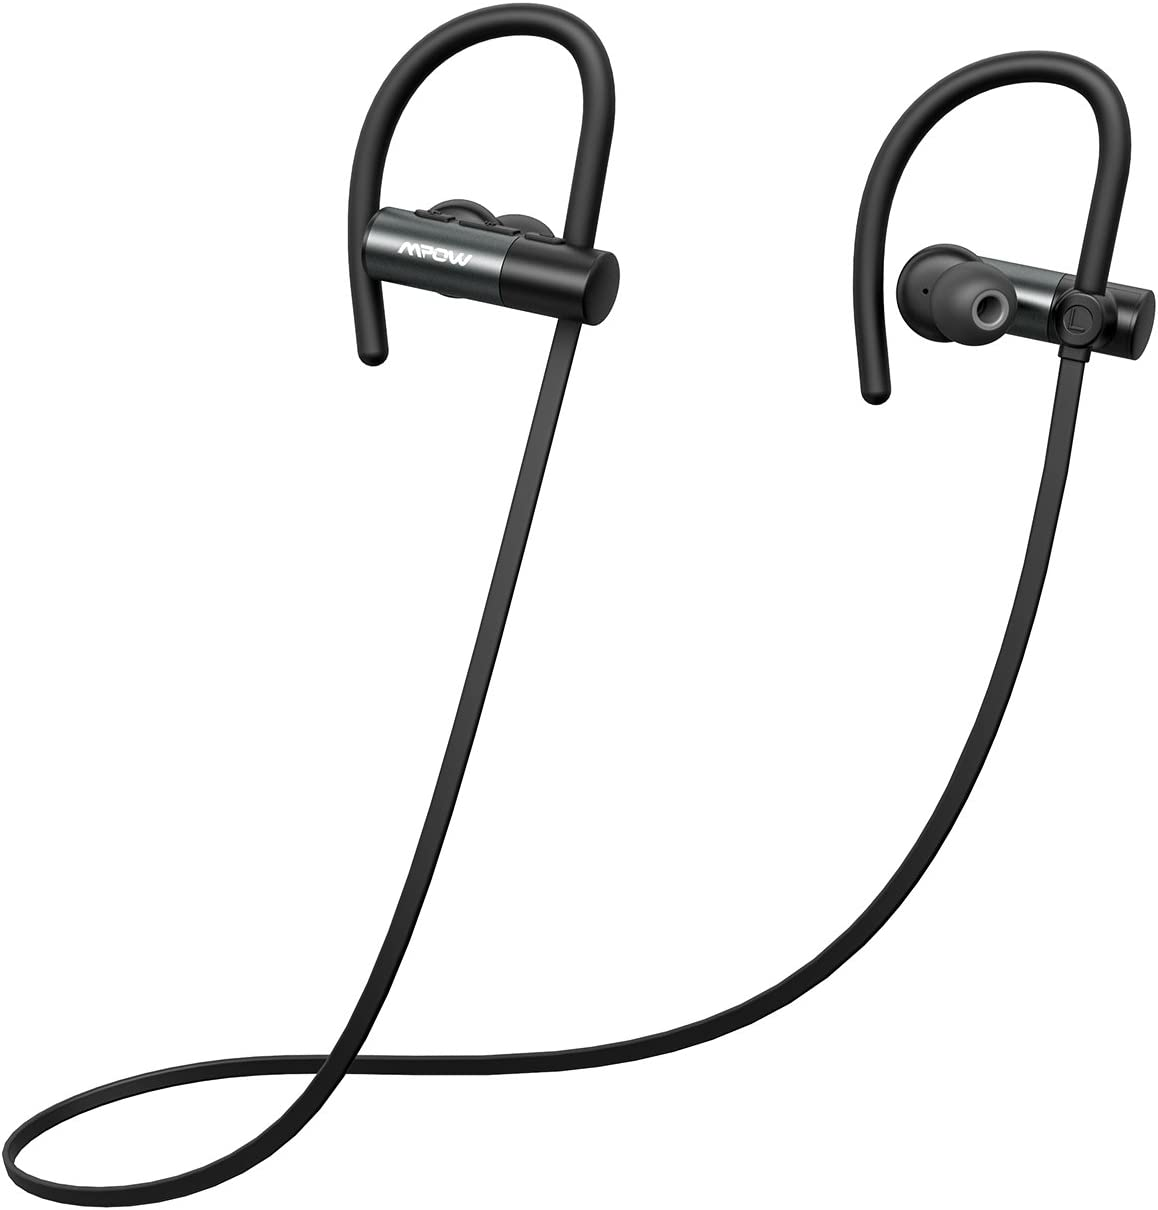 Mpow D4 Bluetooth Headphones, IPX7 Waterproof Sports Earphones w Mic, HD Sound, 8 Hours Playtime, Secure Comfort Fit Metal Earbuds for Running, Jogging, Cycling, Exercising, Black